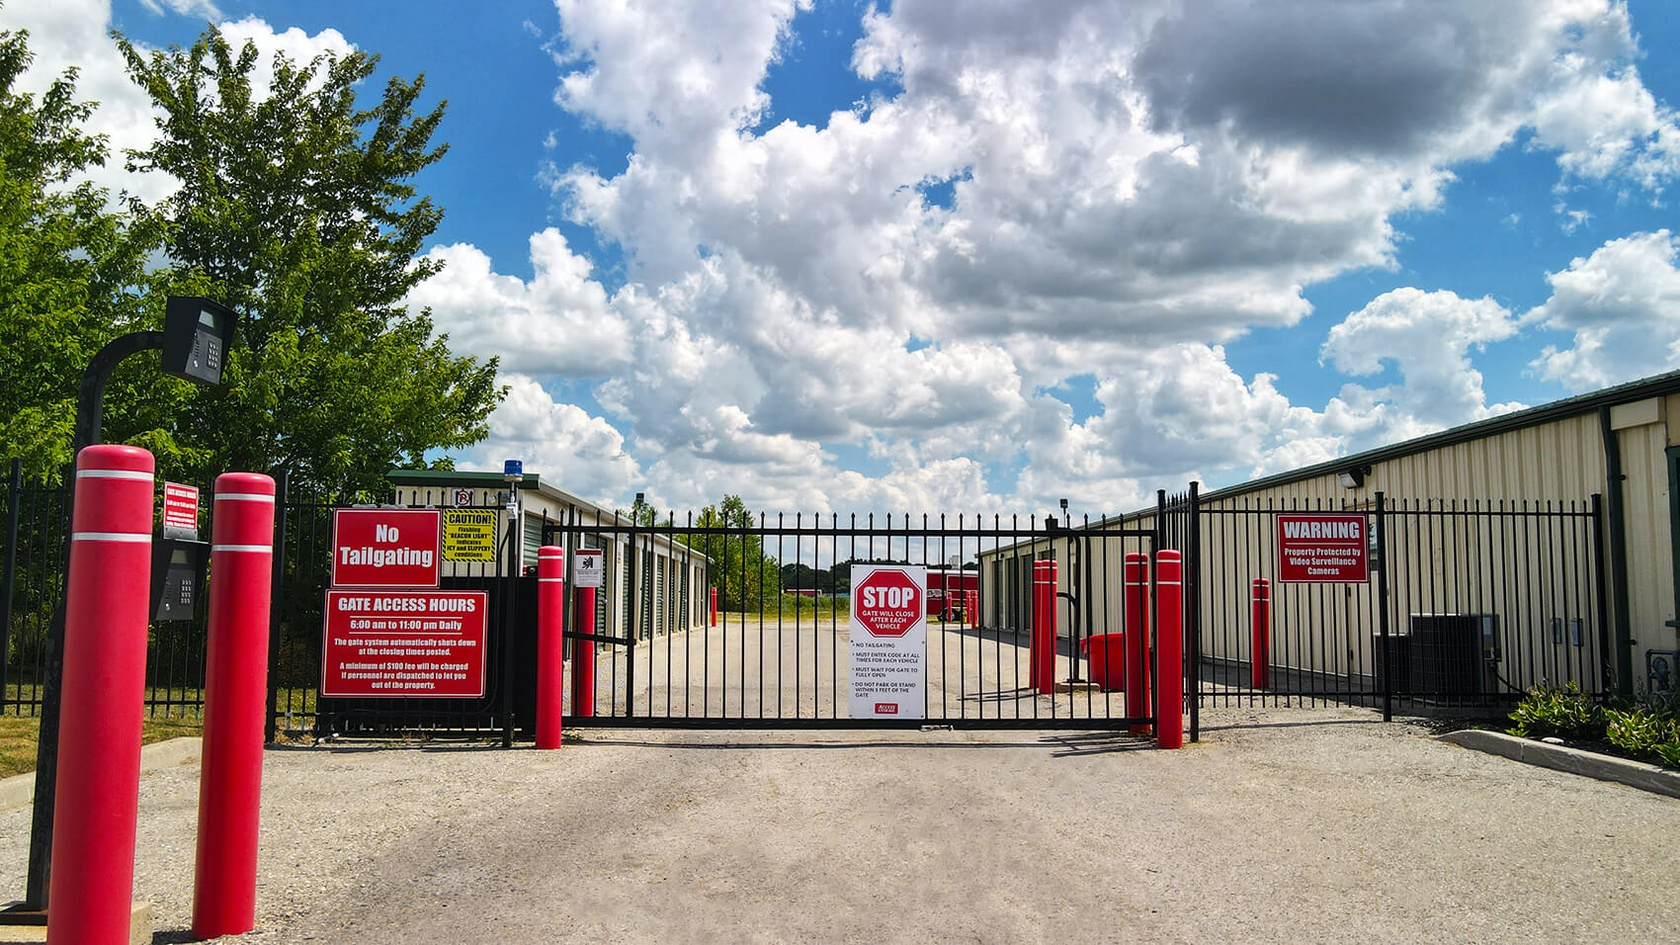 Rent London Clarke storage units at 35 Atlantic Court. We offer a wide-range of affordable self storage units and your first 4 weeks are free!